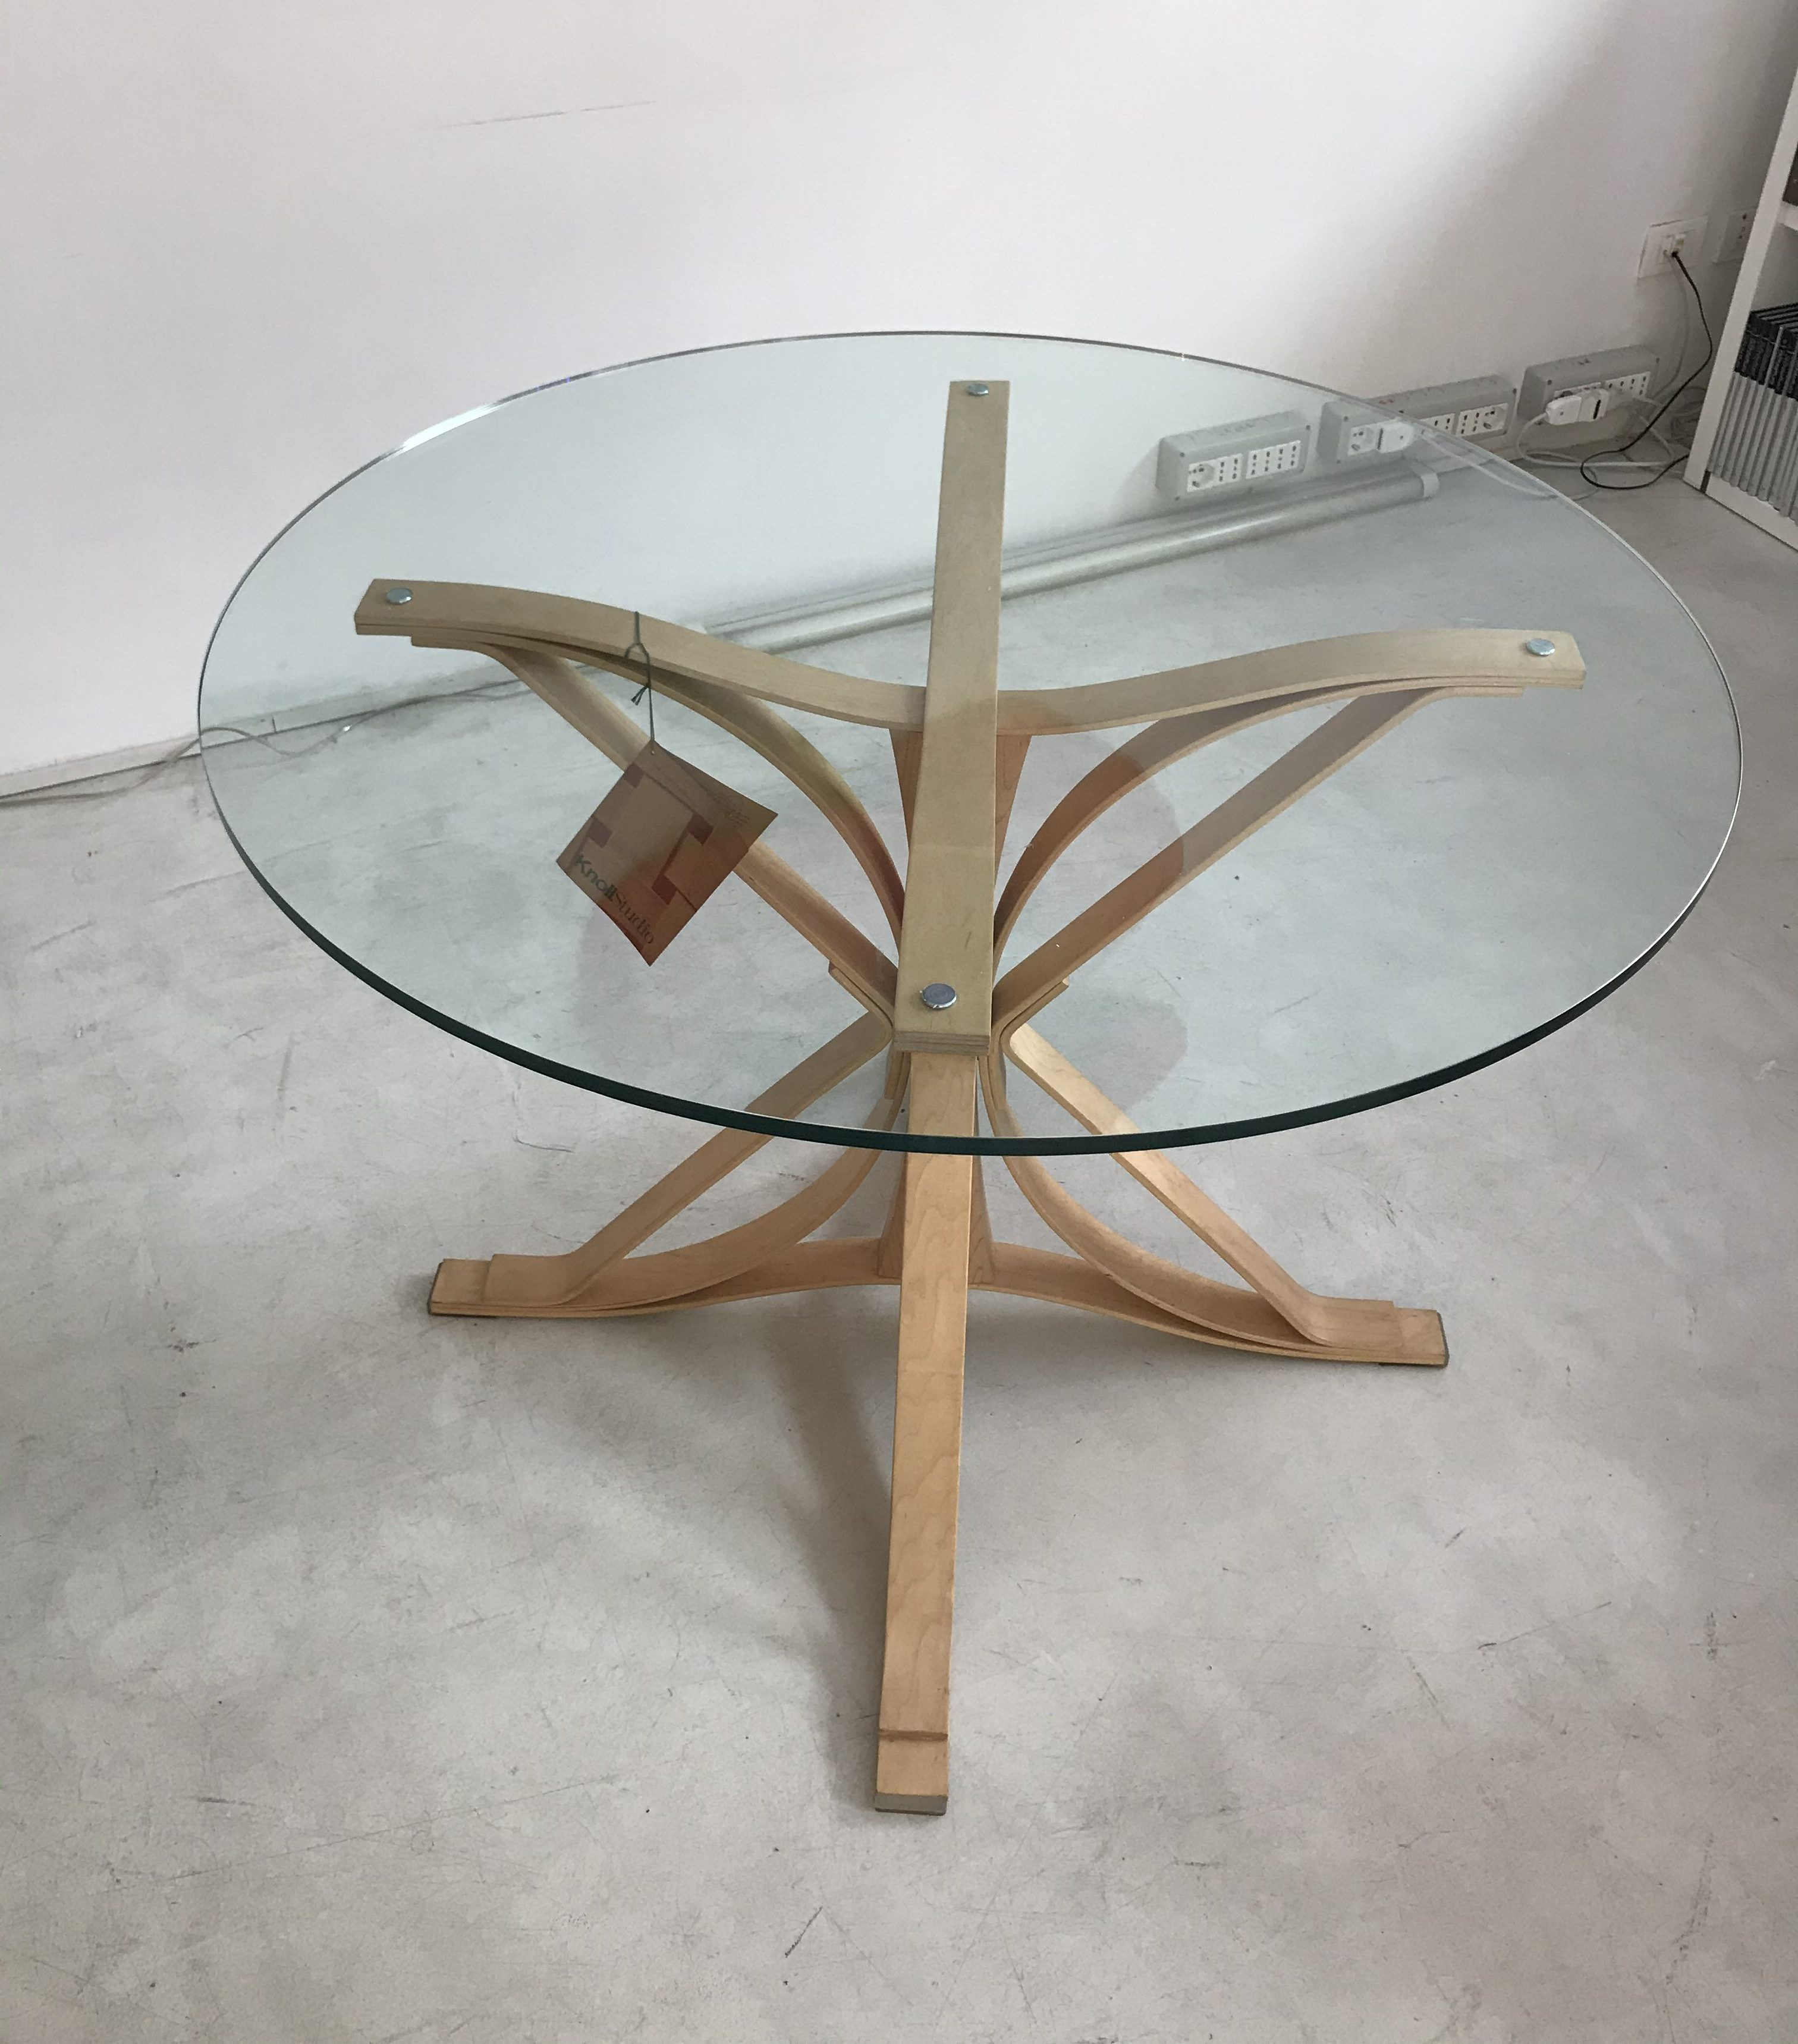 FACE OFF TABLE design Frank Gehry original Knoll